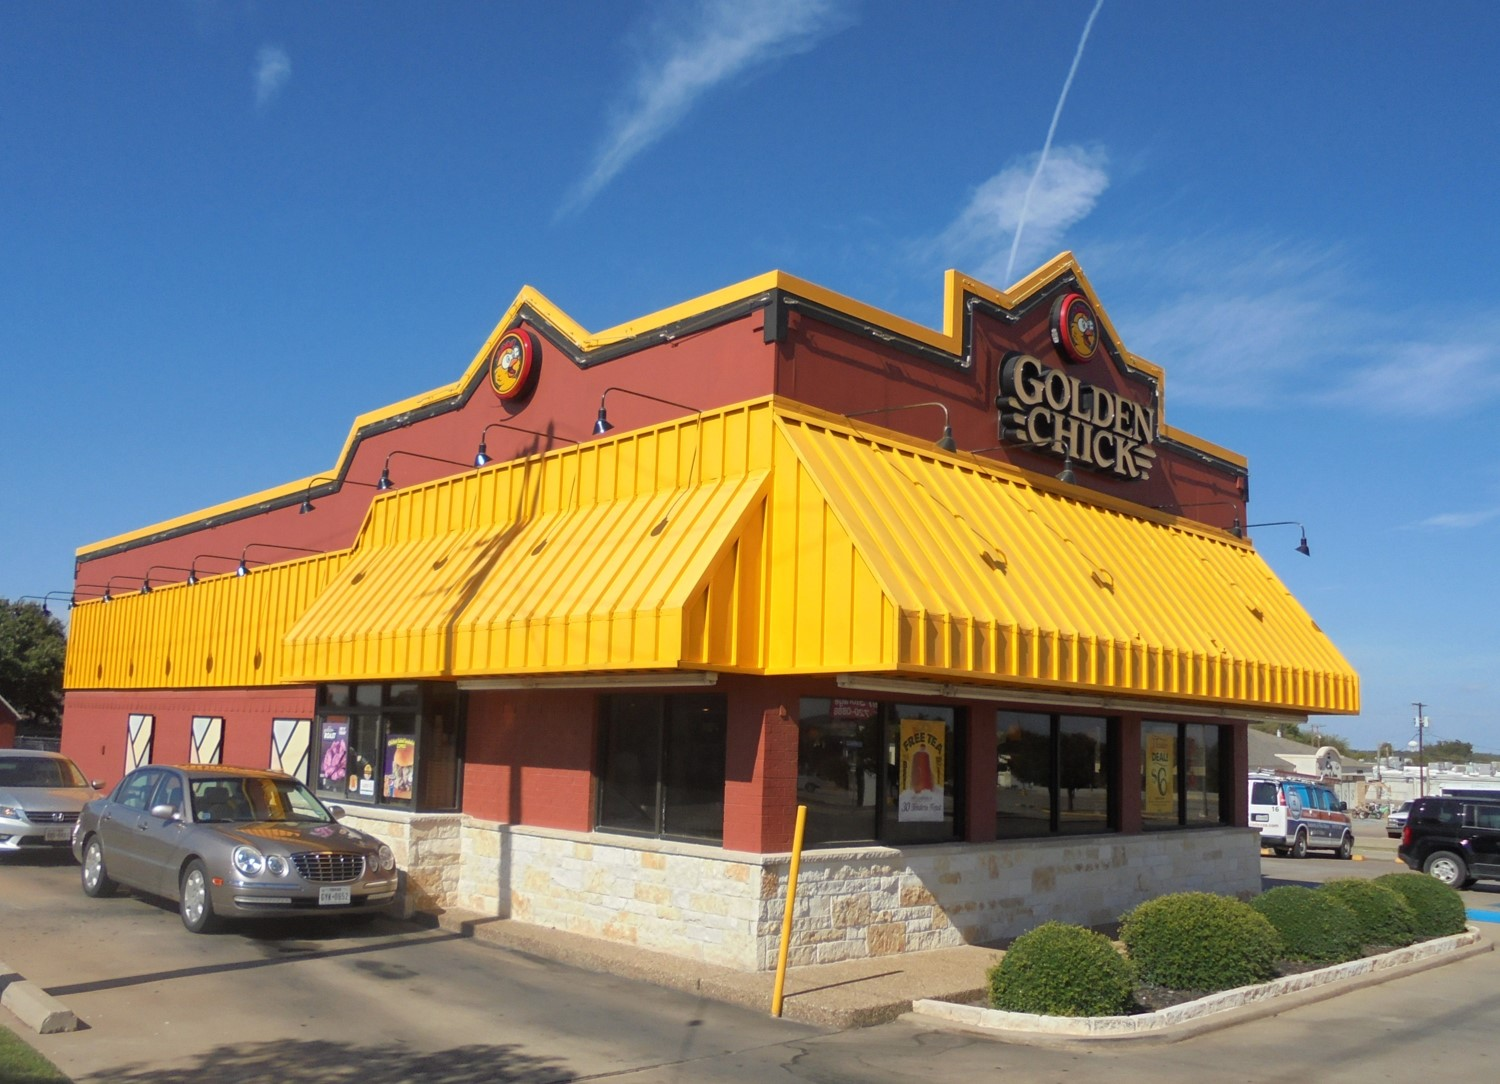 Golden Chick storefront.  Your local Golden Chick fast food restaurant in Wichita Falls, Texas